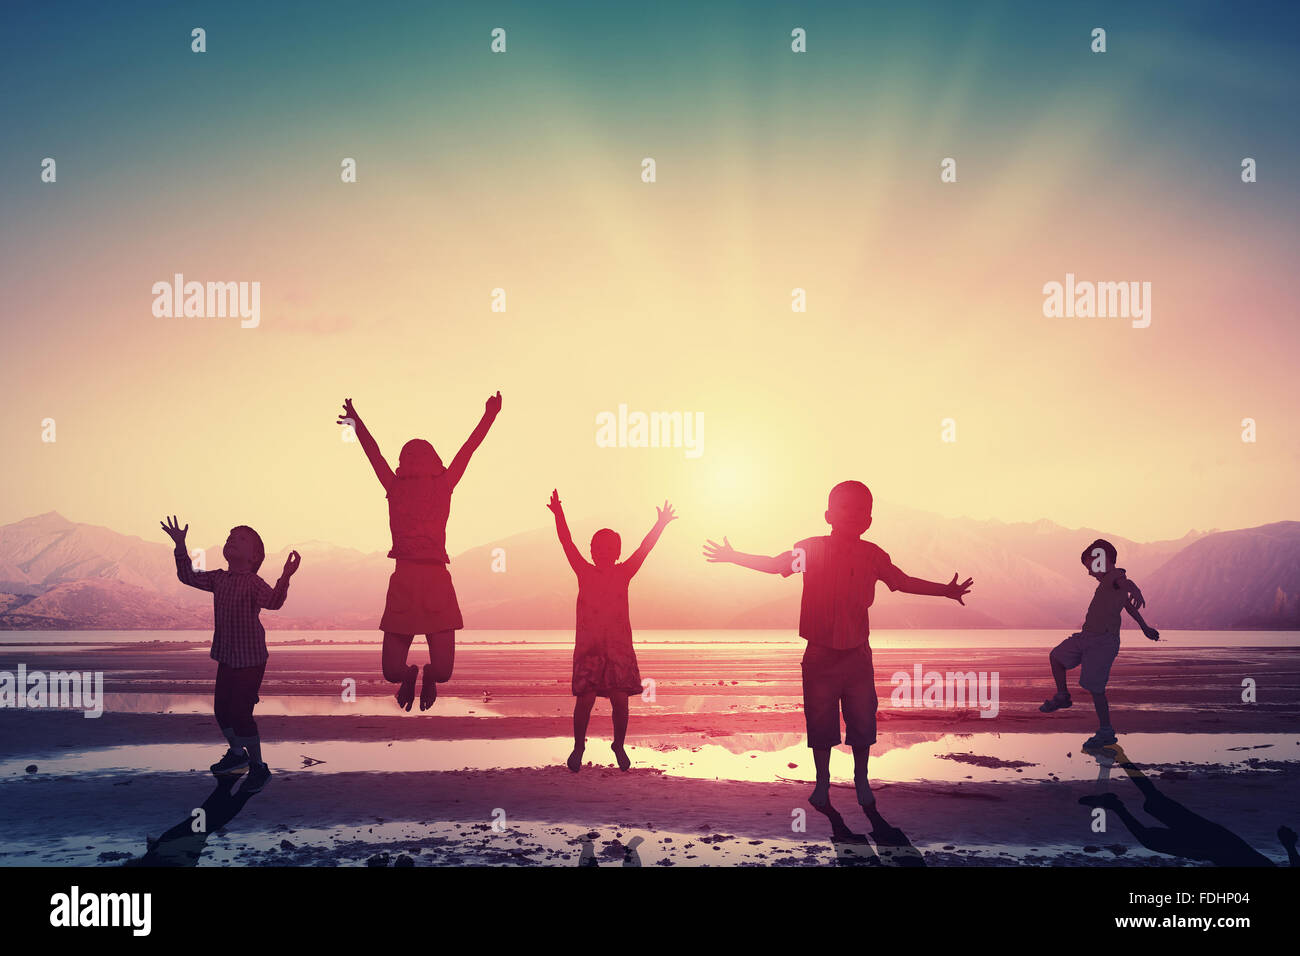 Silhouettes of group of children jumping high joyfully on sunset background - Stock Image